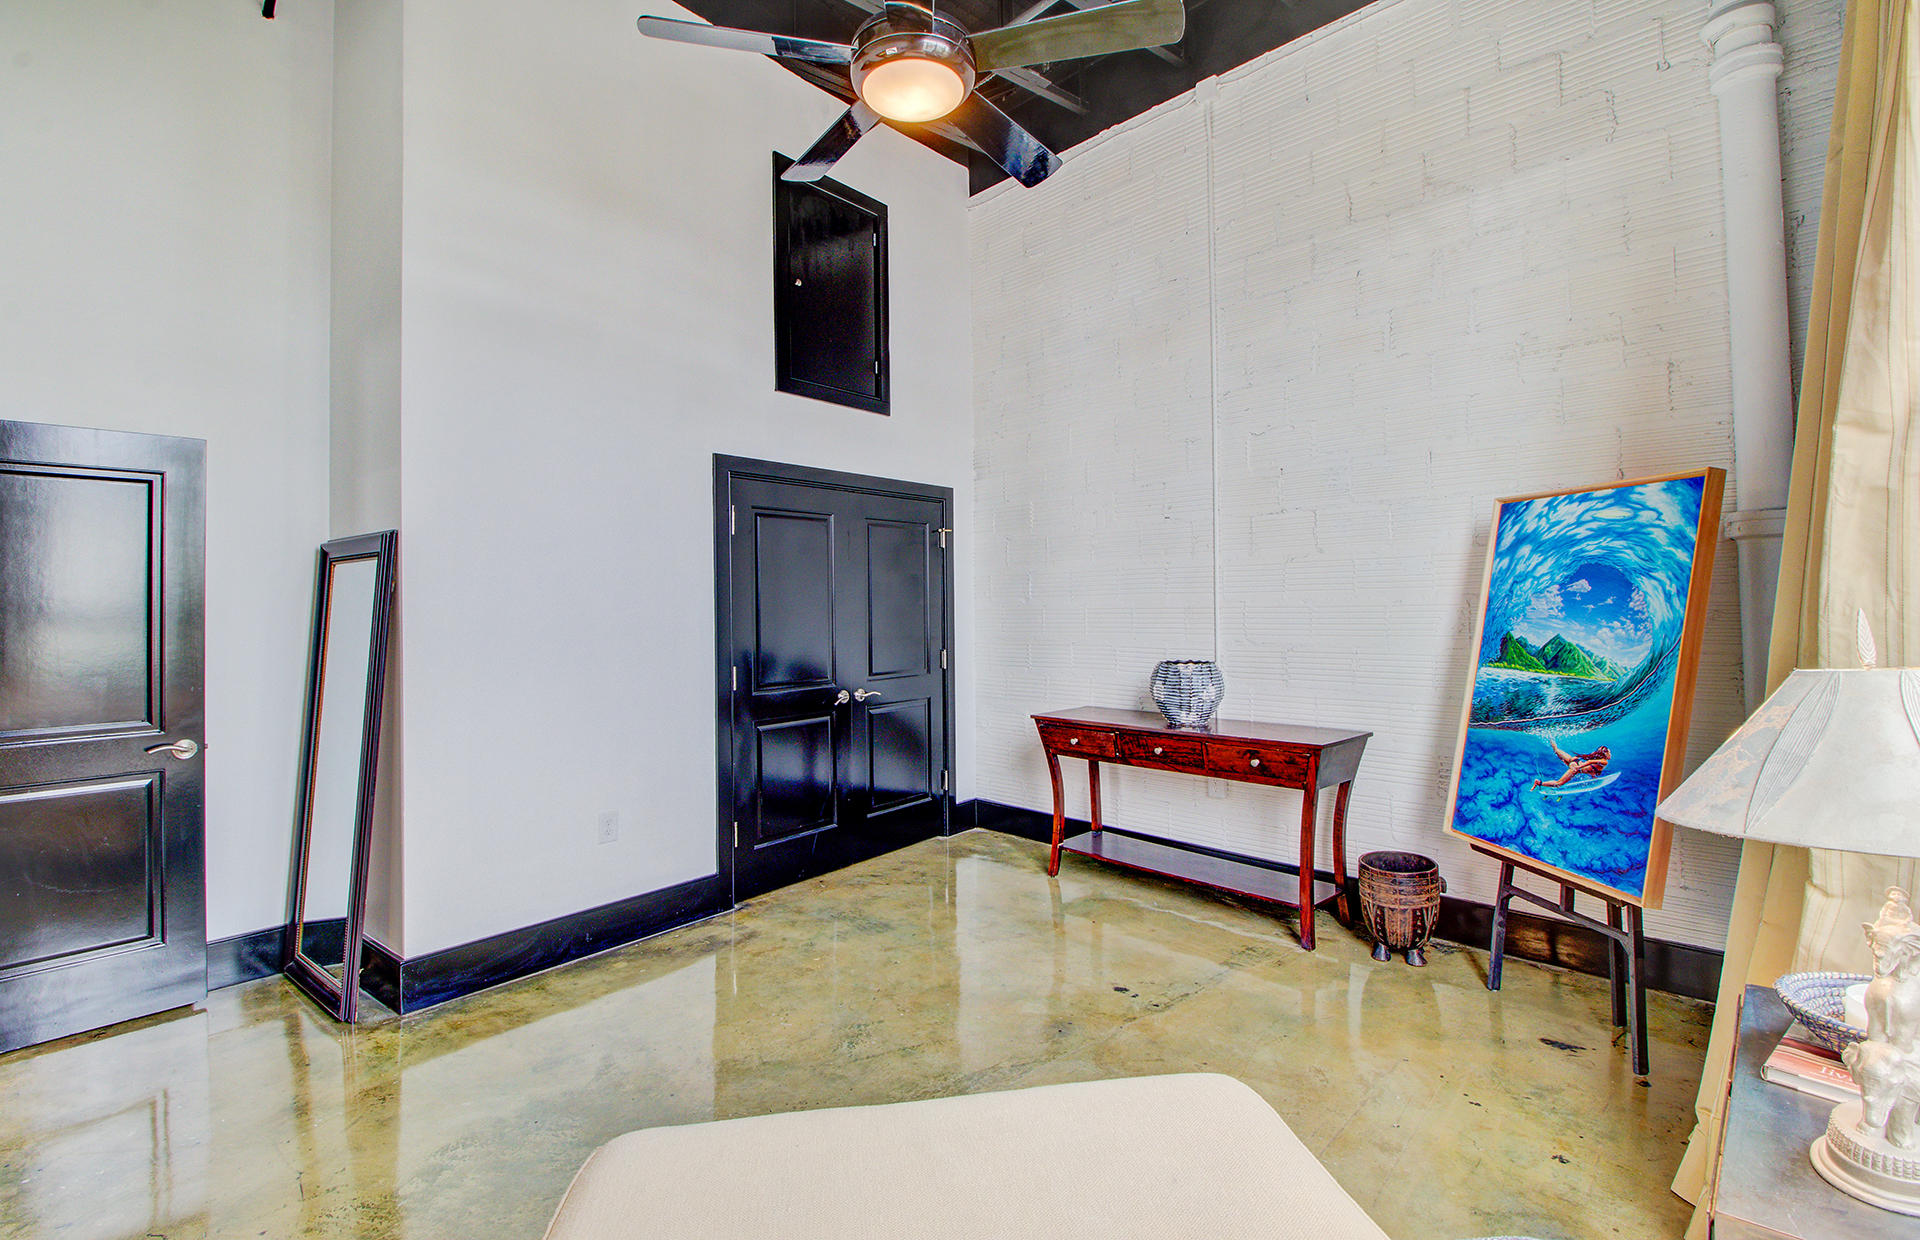 King Street Lofts Homes For Sale - 517 King, Charleston, SC - 4